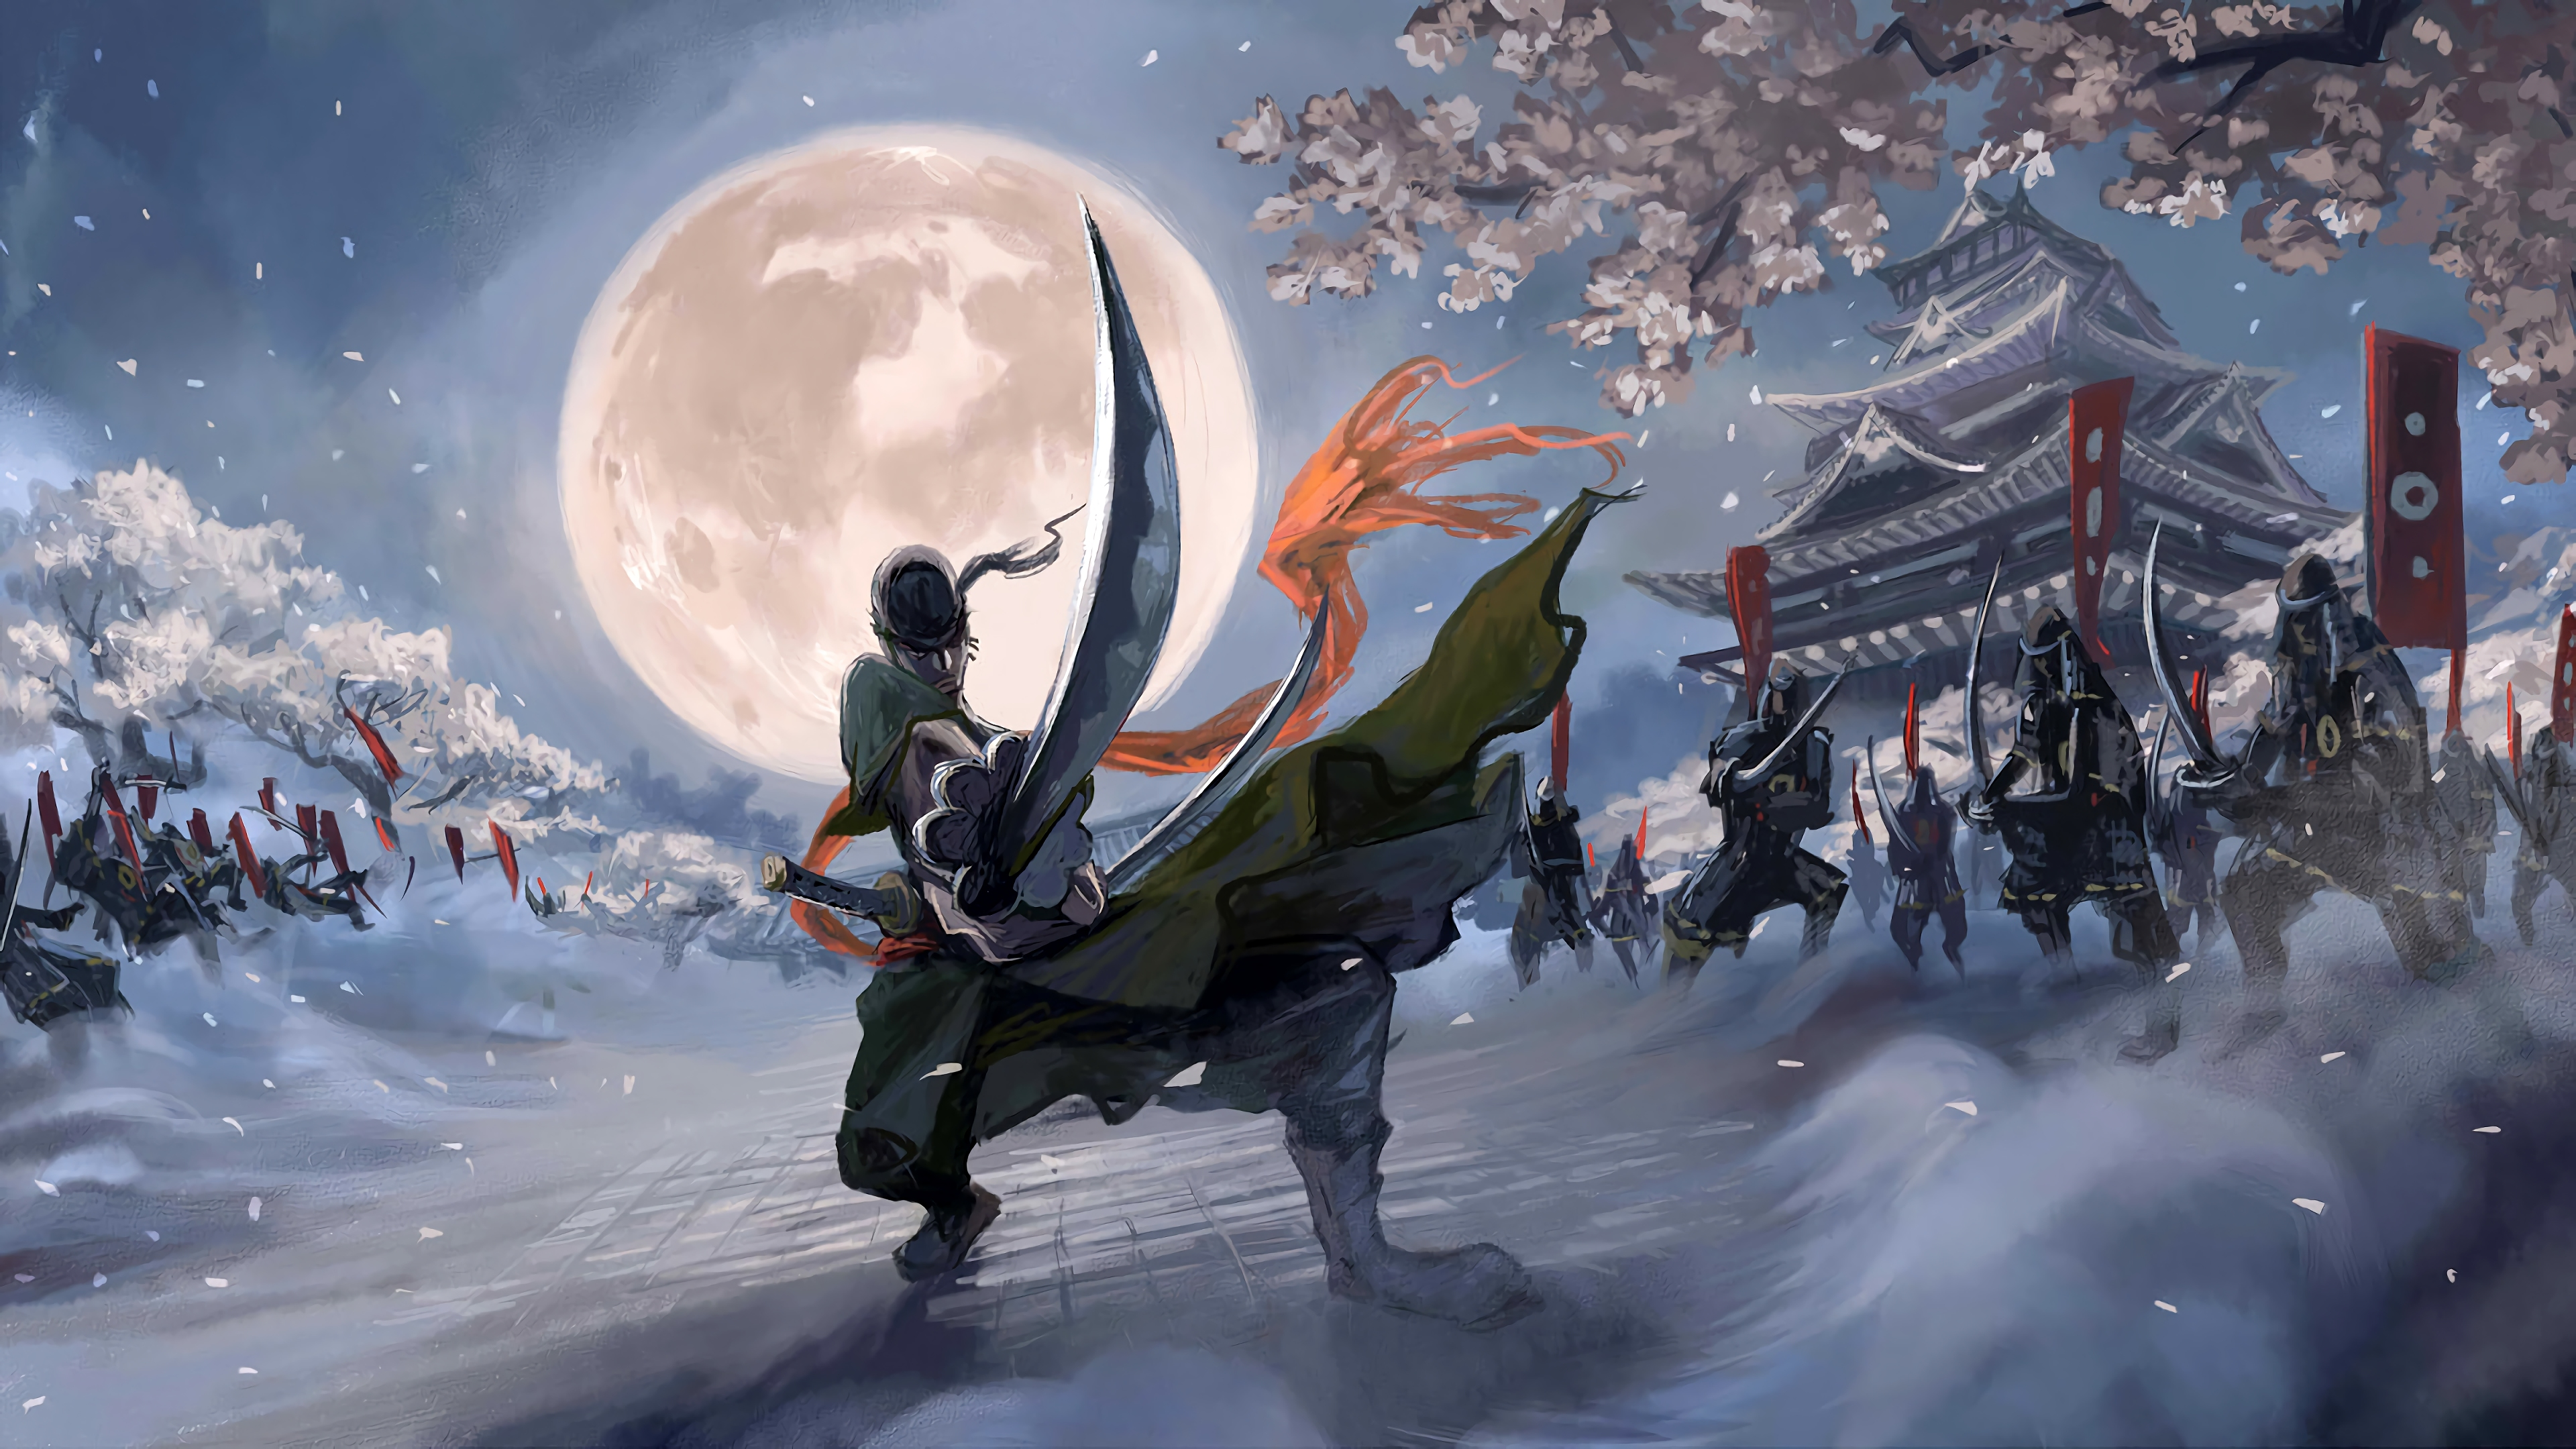 zoro roronoa 4k 1541974209 - Zoro Roronoa 4k - zoro roronoa wallpapers, one piece wallpapers, hd-wallpapers, digital art wallpapers, artwork wallpapers, artist wallpapers, anime wallpapers, 4k-wallpapers